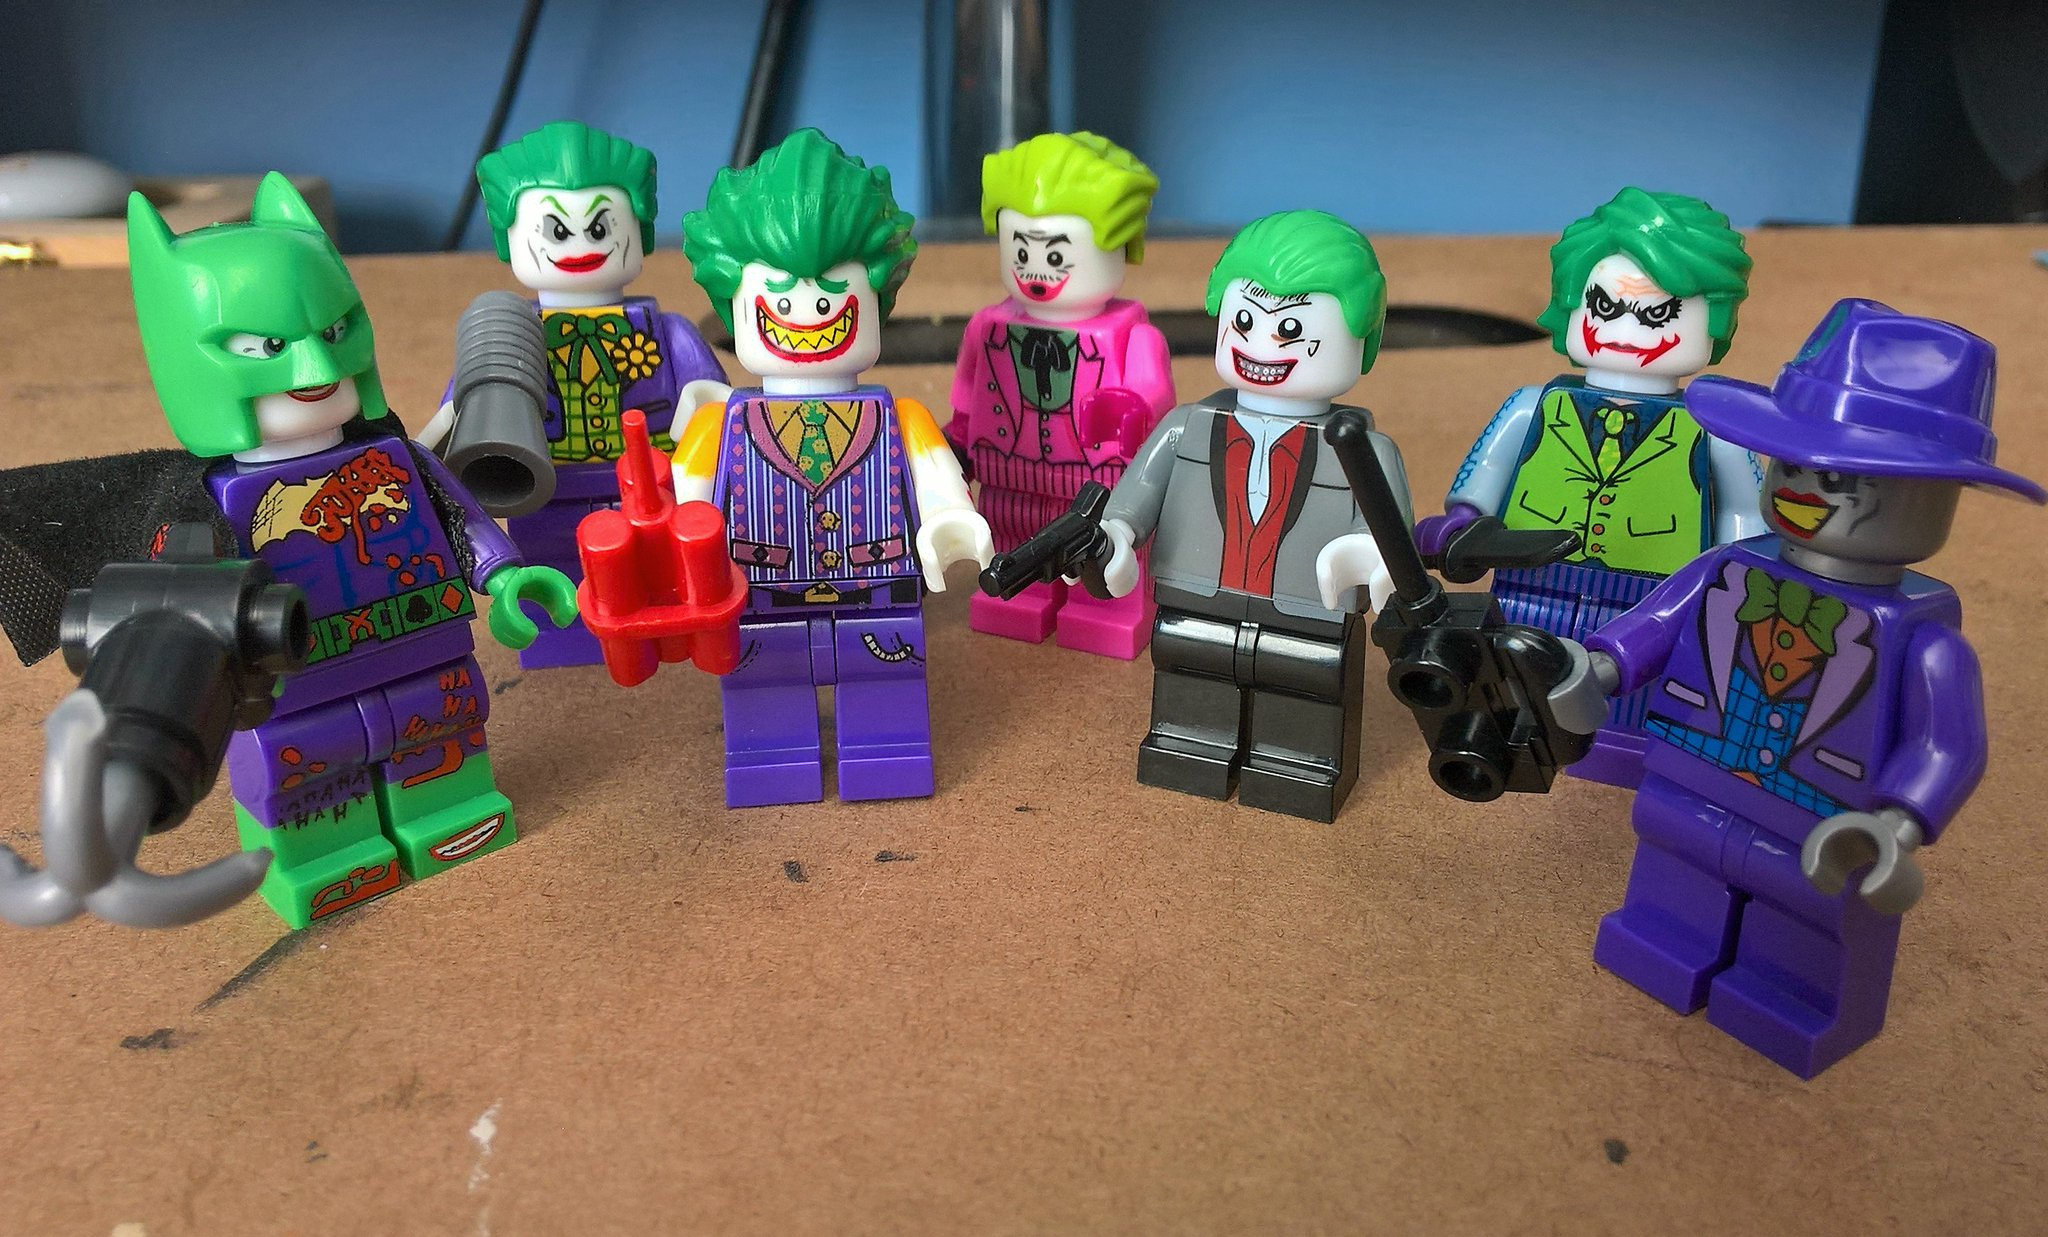 Joker images collection 46 - Lucky Negan On Twitter Sooo I Guess The Joker Lego Collection Is Getting Out Of Hand Idk Do They Make A Jeromevaleska Gotham Joker Yet